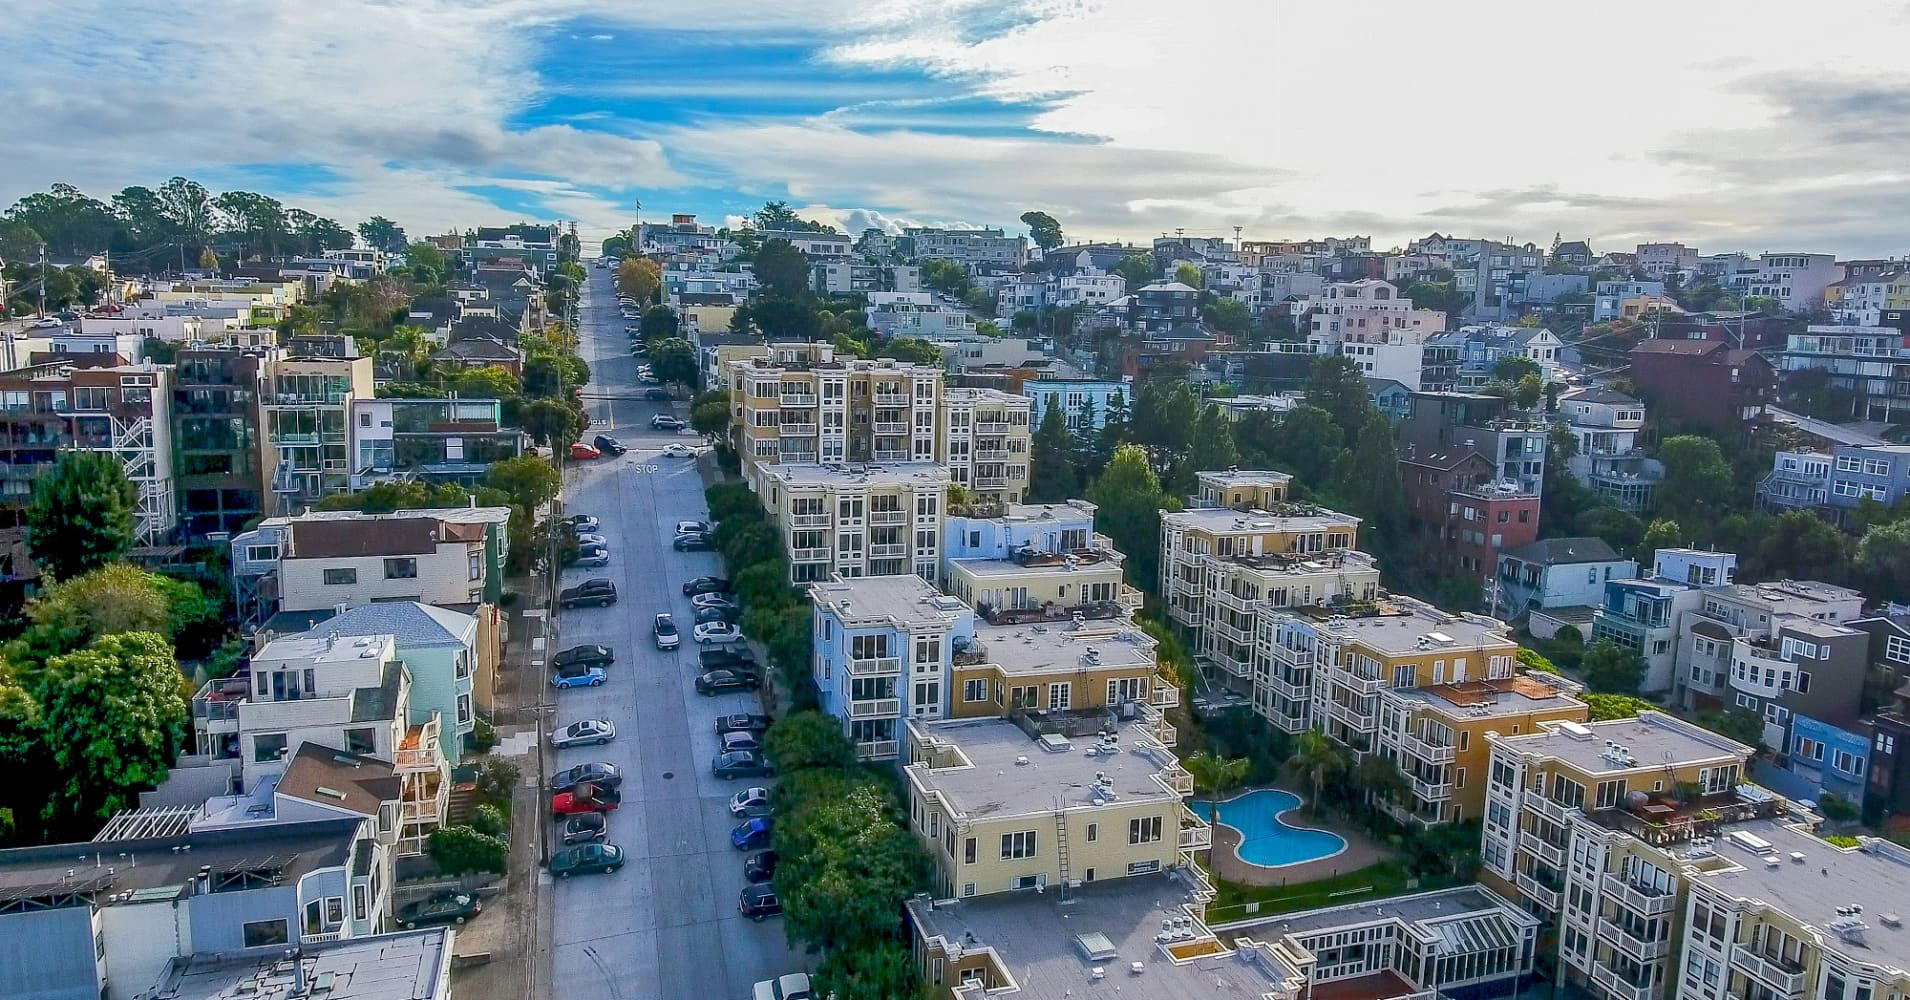 Aerial view of residential area of San Francisco just outside the downtown district.